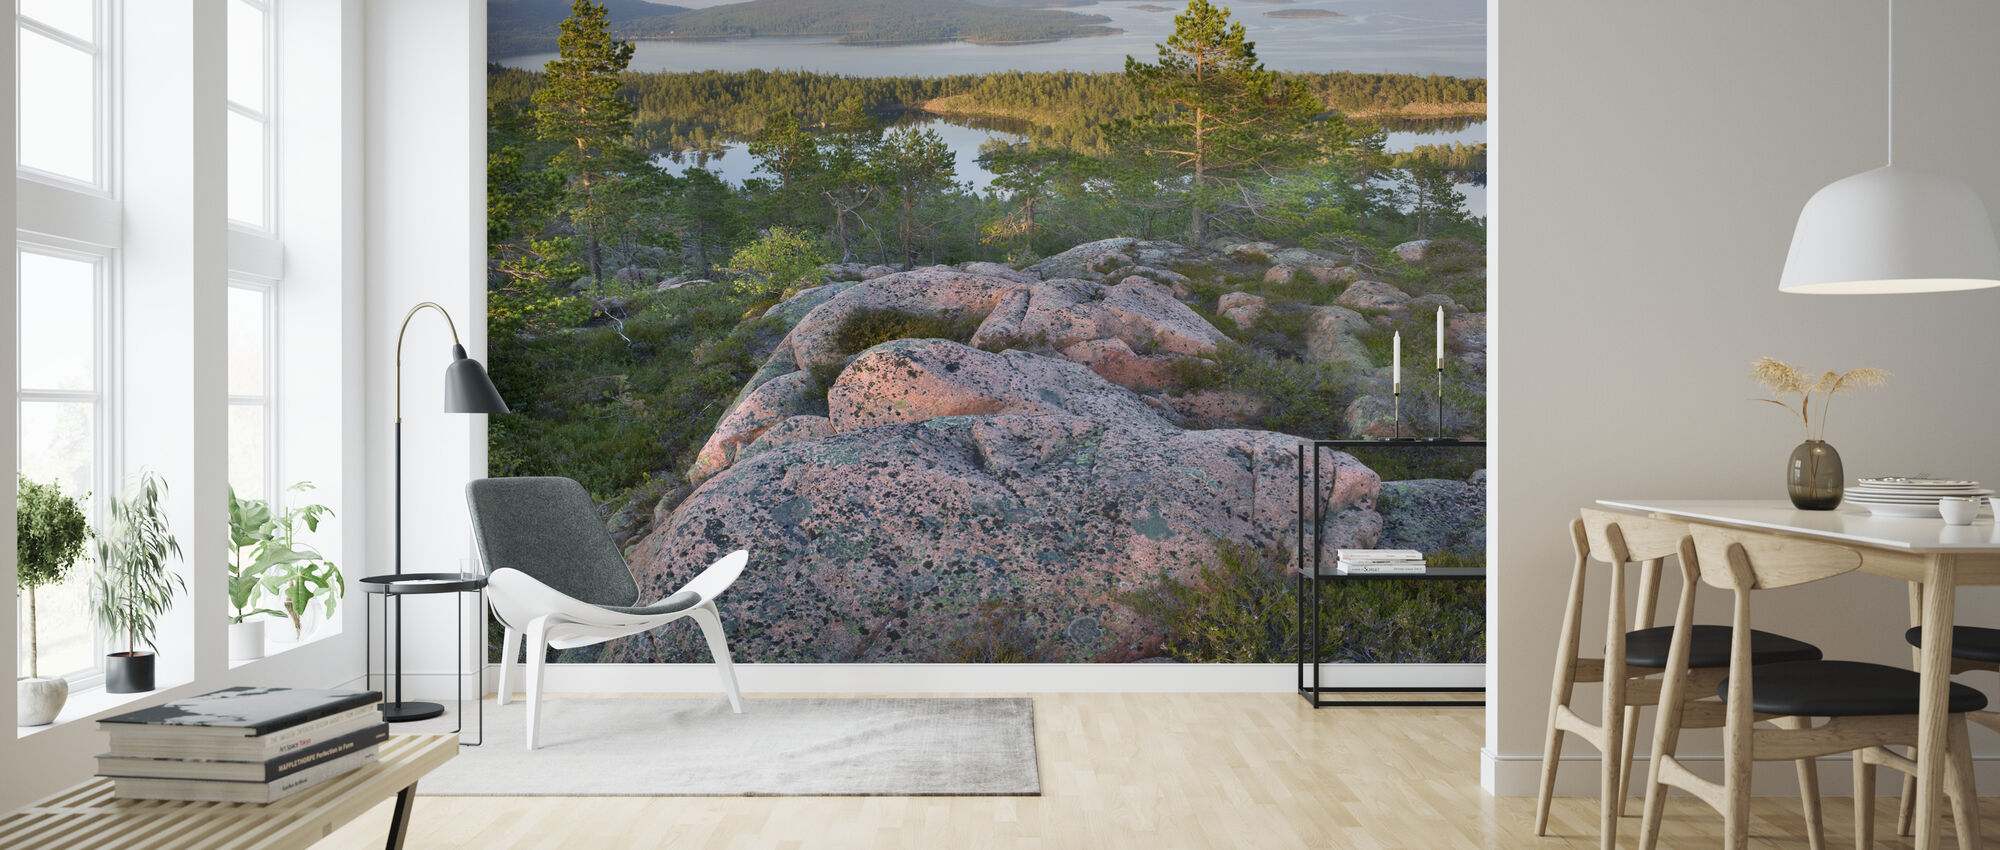 Skuleskogen National Park, Sweden - Wallpaper - Living Room